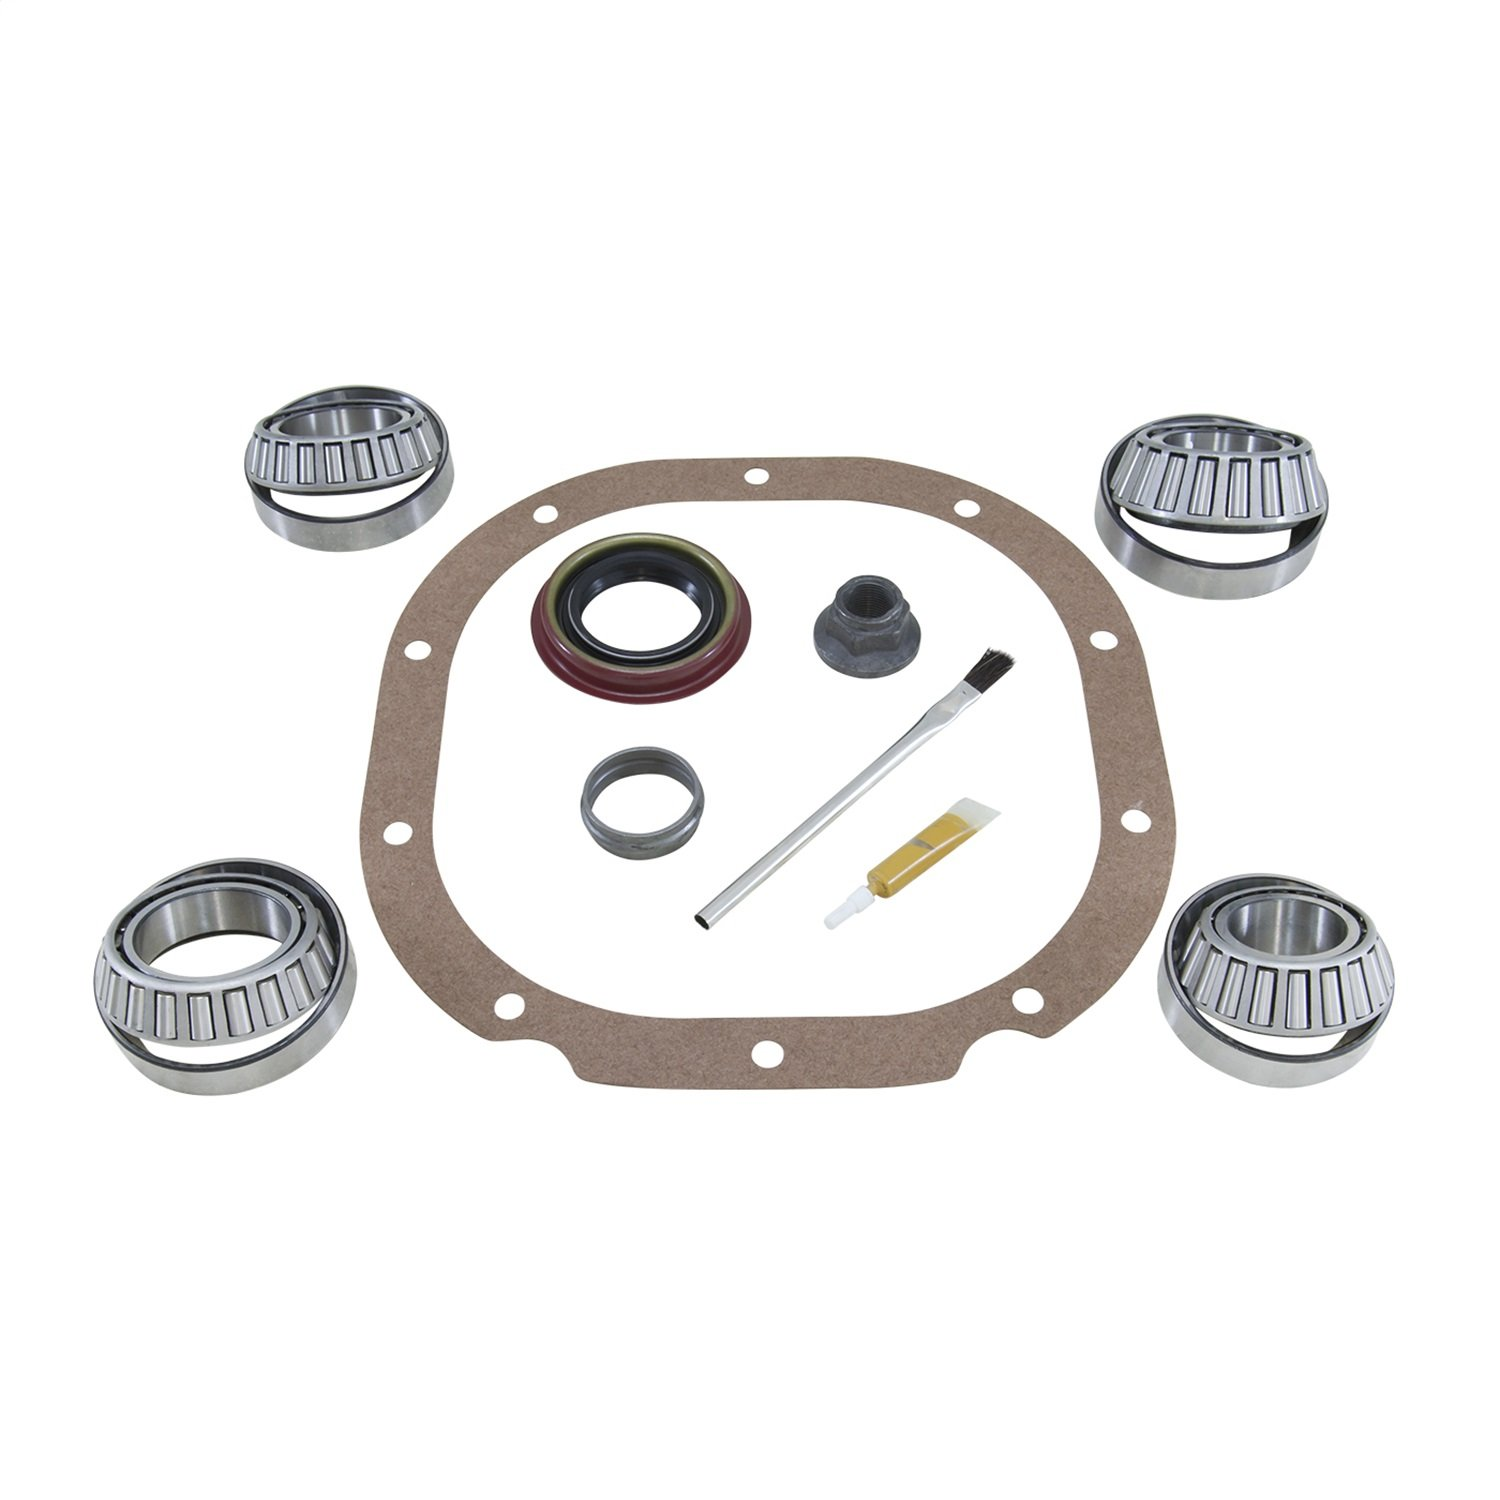 ZBKF8.8 USA Standard Gear Bearing Kit for Ford 8.8 Differential